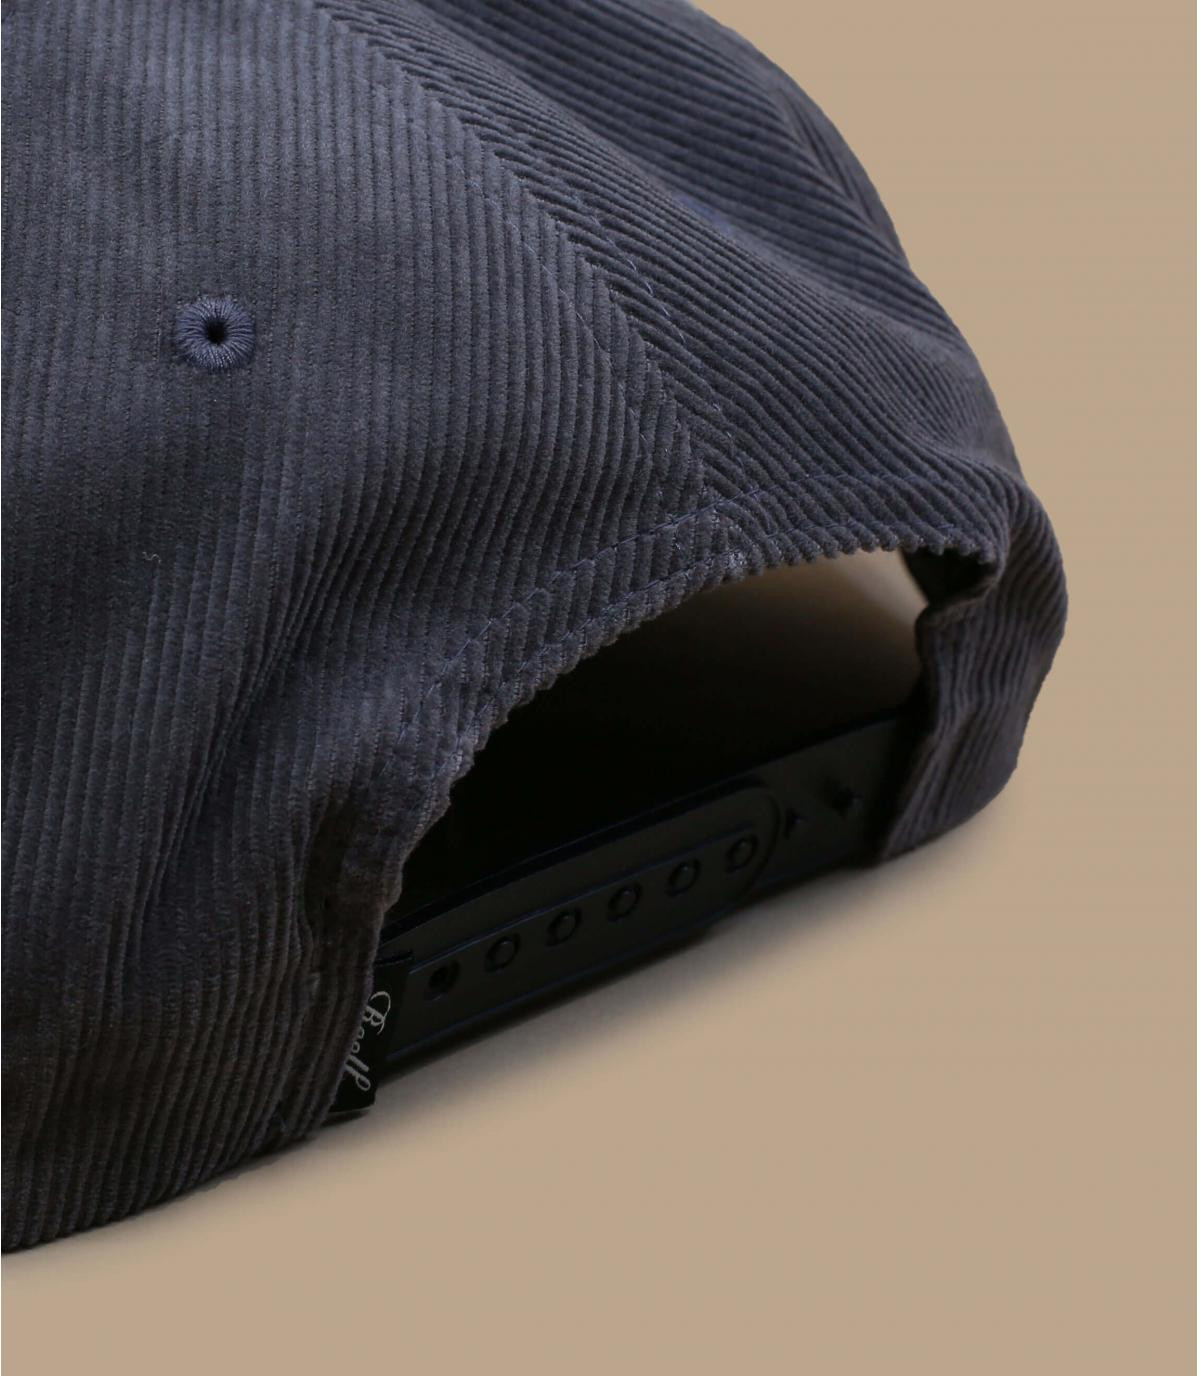 Details Pitchout charcoal washed olive - Abbildung 4